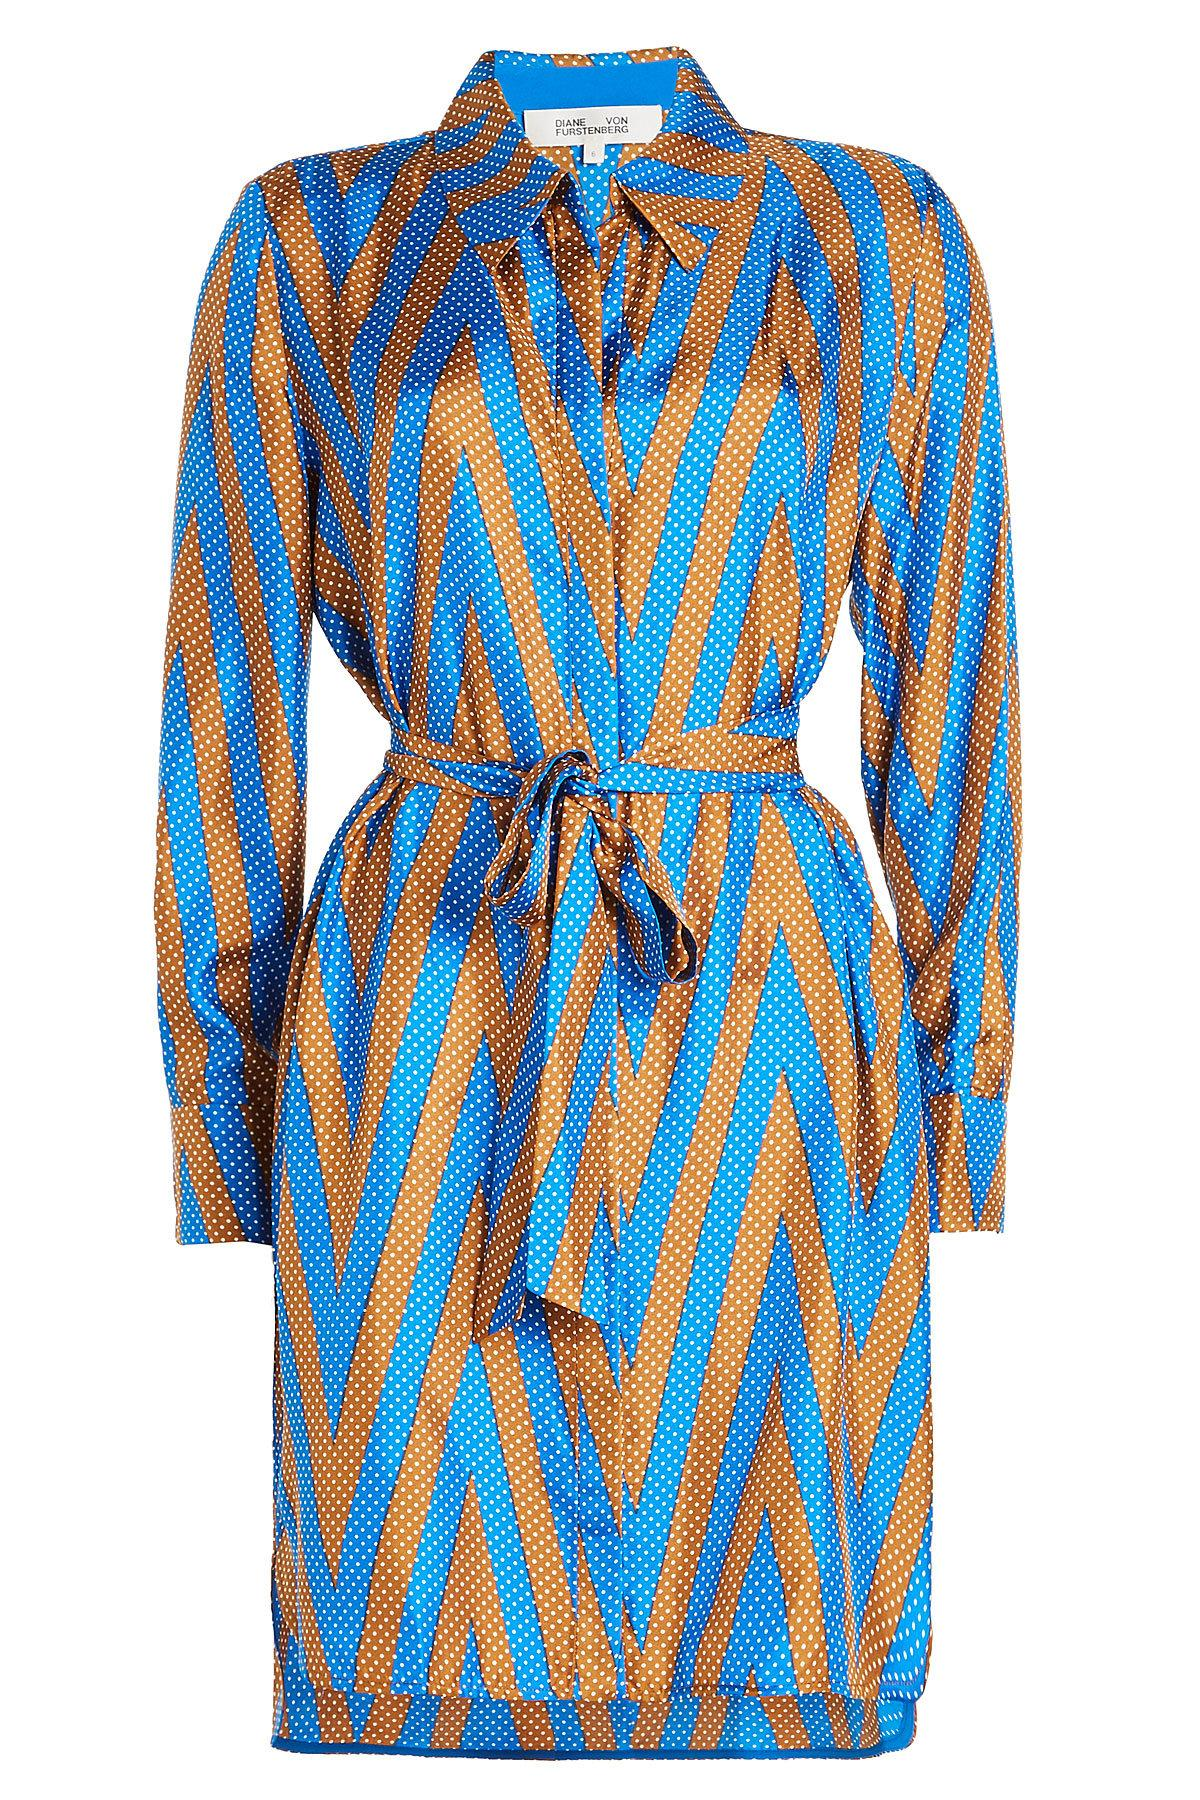 Diane Von Furstenberg Printed Silk Wrap Dress In Multicolored